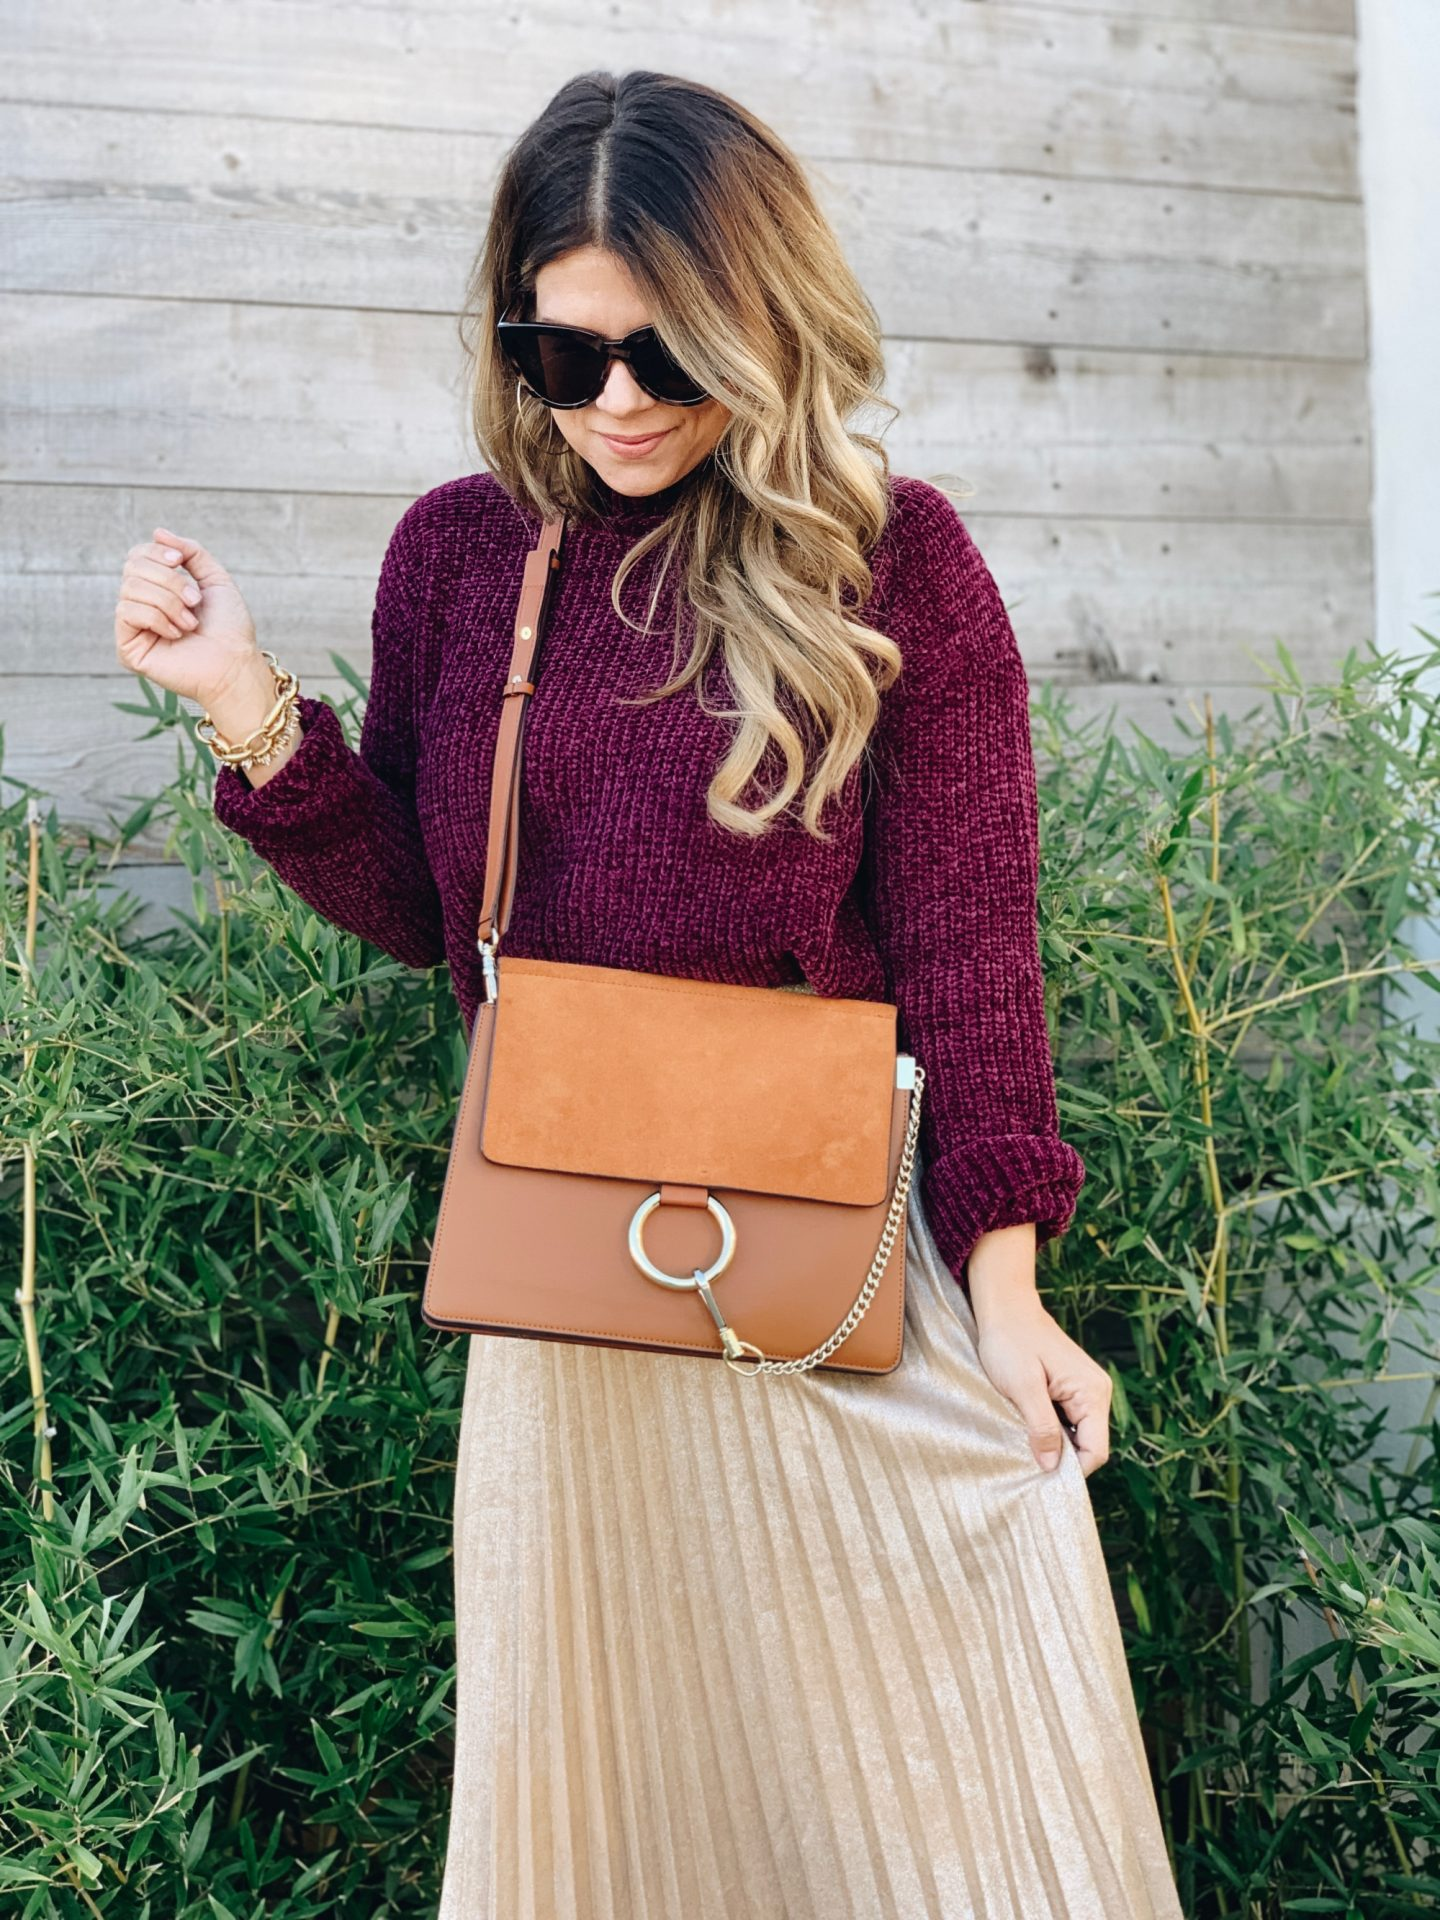 Gold Metallic Skirt, Chloe Faye Bag, Chloe Dupe, Chloe Faye Look For Less, How to style a Gold Midi Skirt